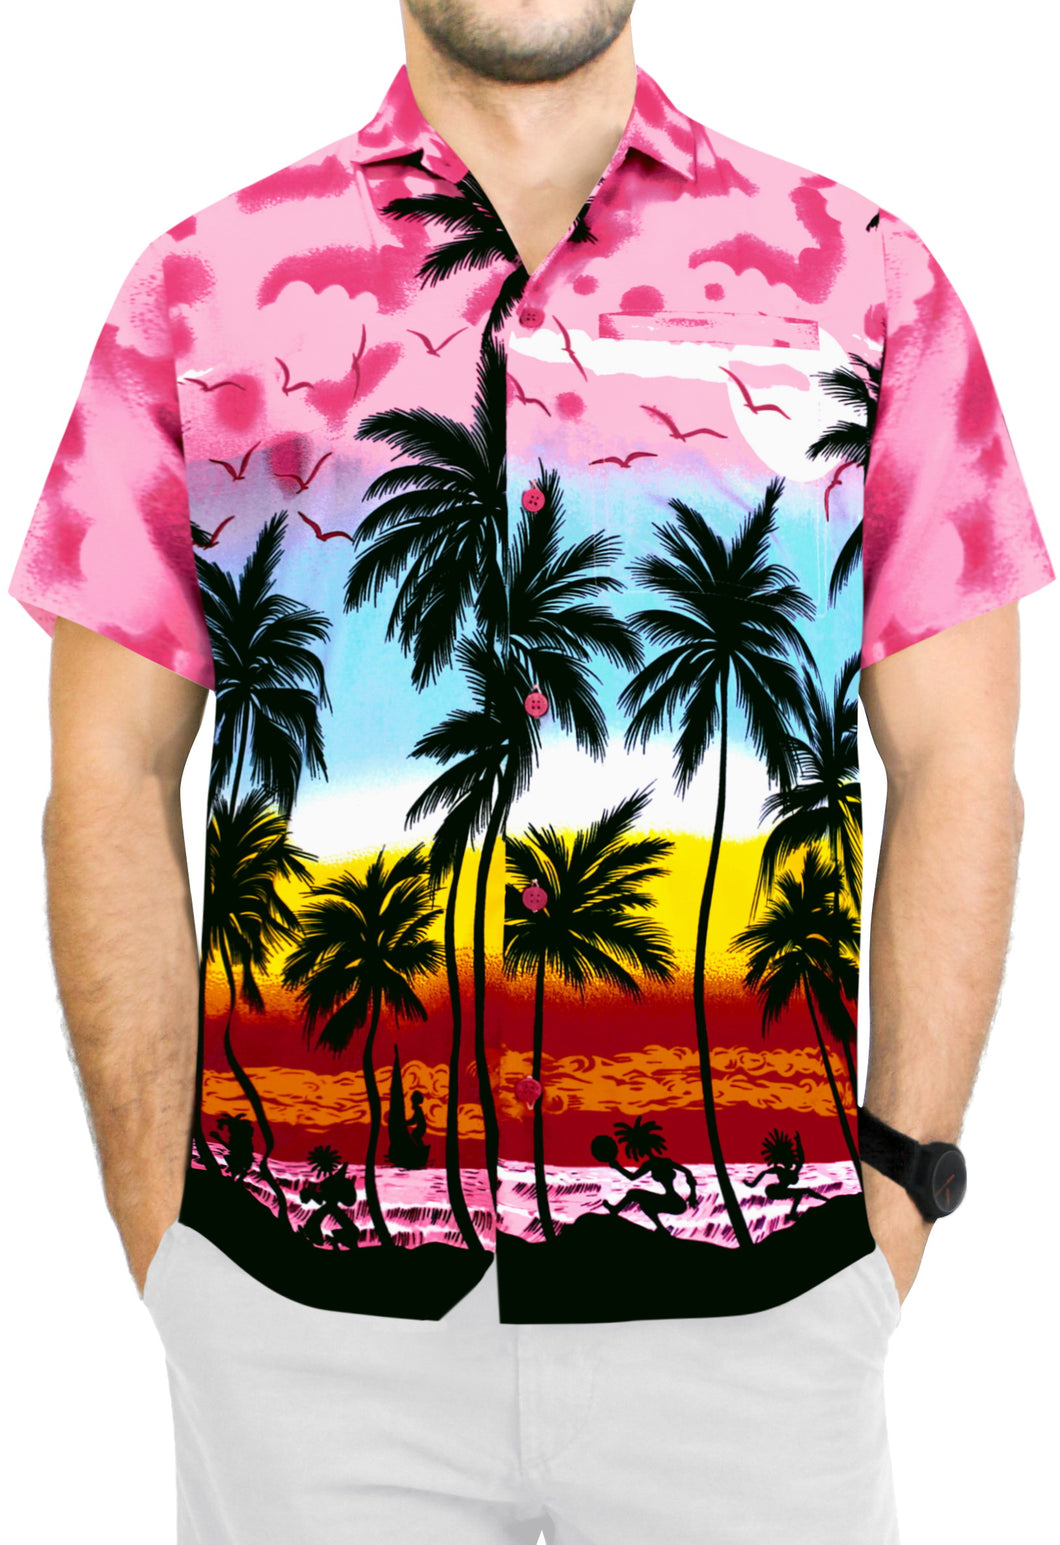 la-leela-hawaiian-shirt-for-men-short-sleeve-front-pocket-beach-palm-tree-Pink